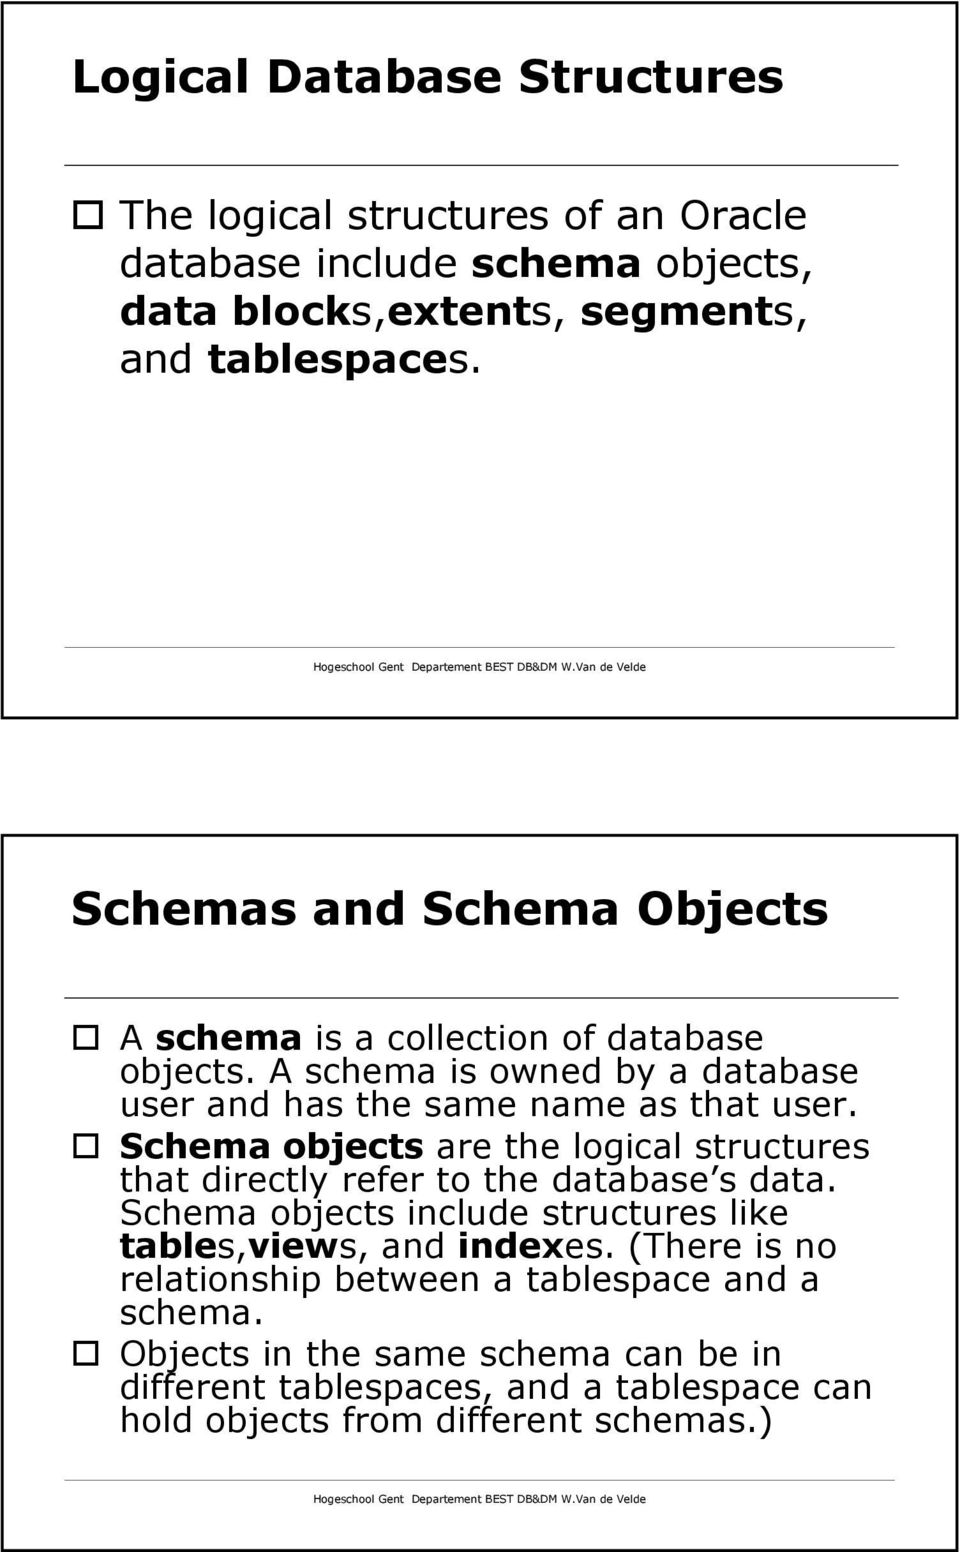 Schema objects are the logical structures that directly refer to the database s data. Schema objects include structures like tables,views, and indexes.